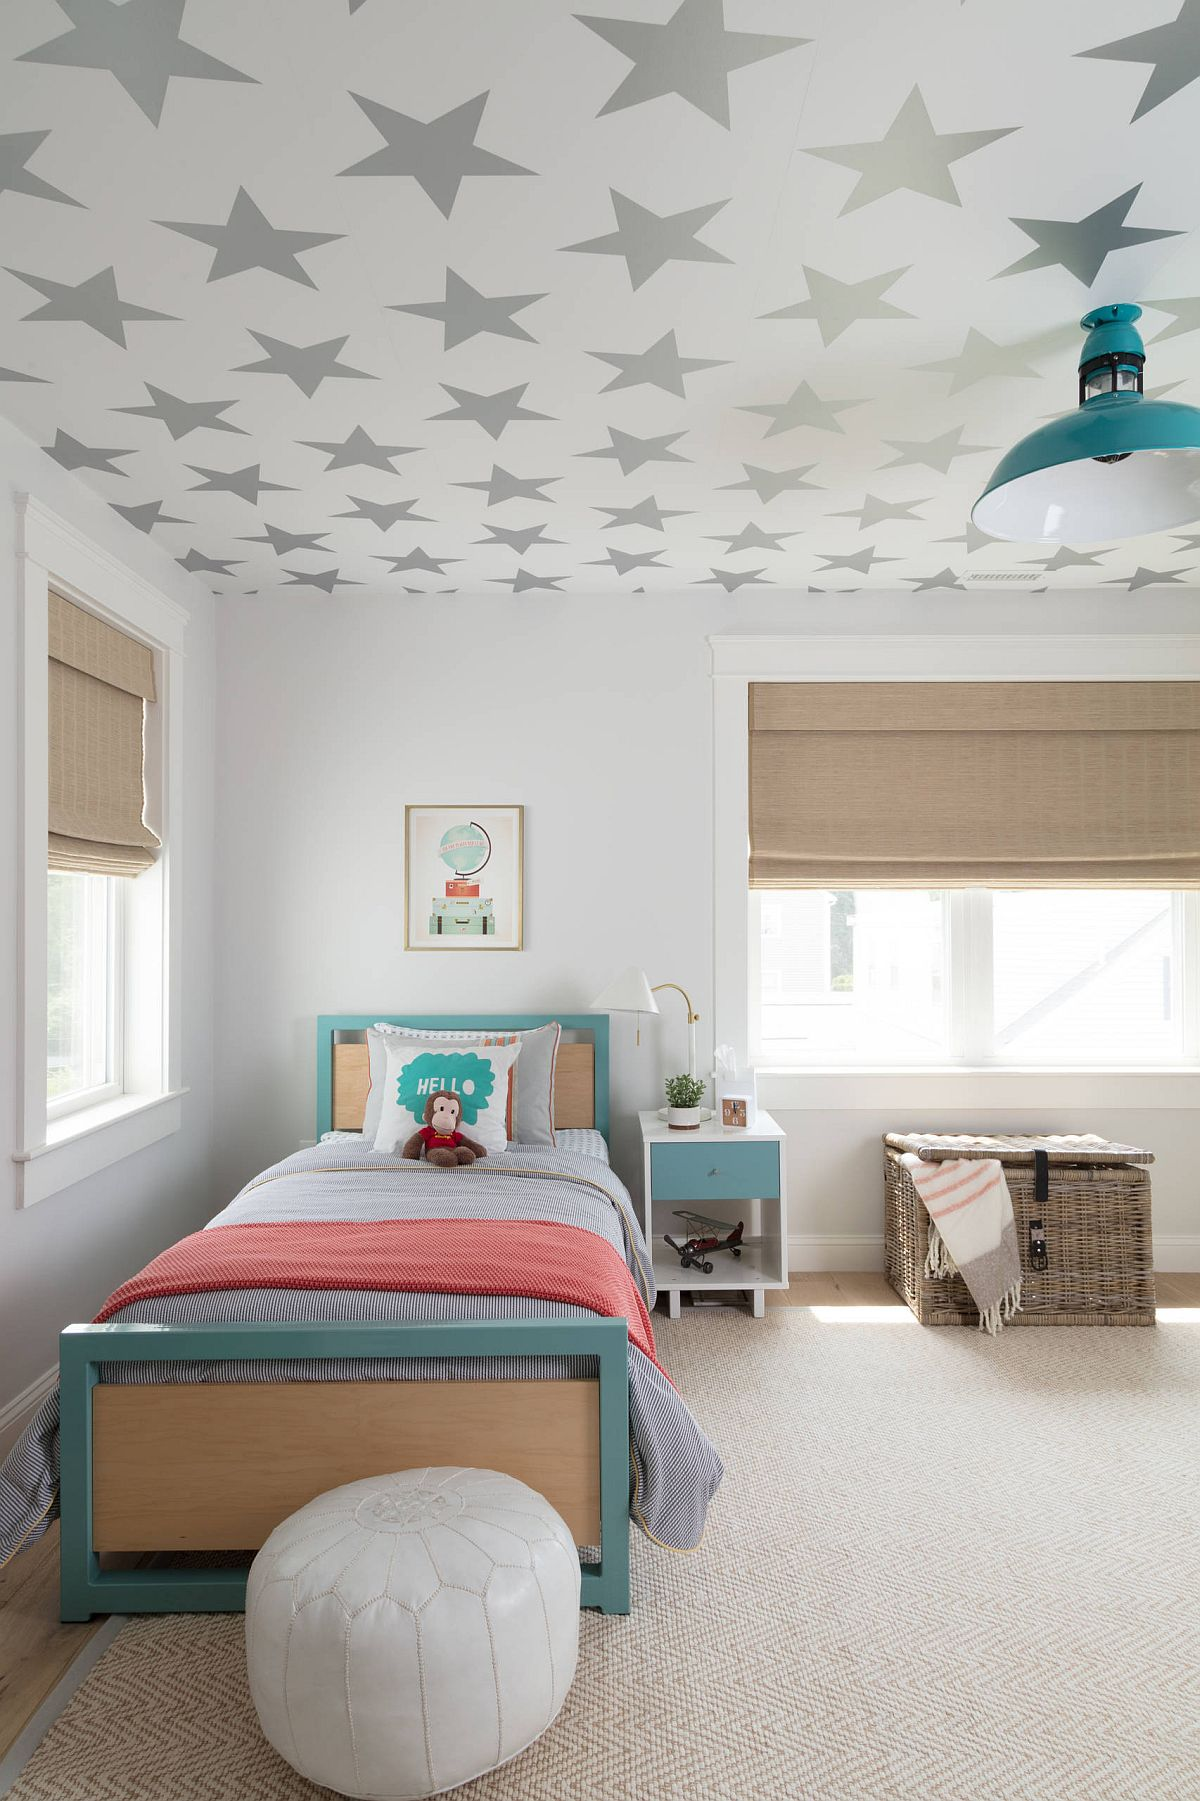 Wallpaper-on-ceiling 10 Cute Ways to Use Removable Wallpaper for Your Kid's Bedroom